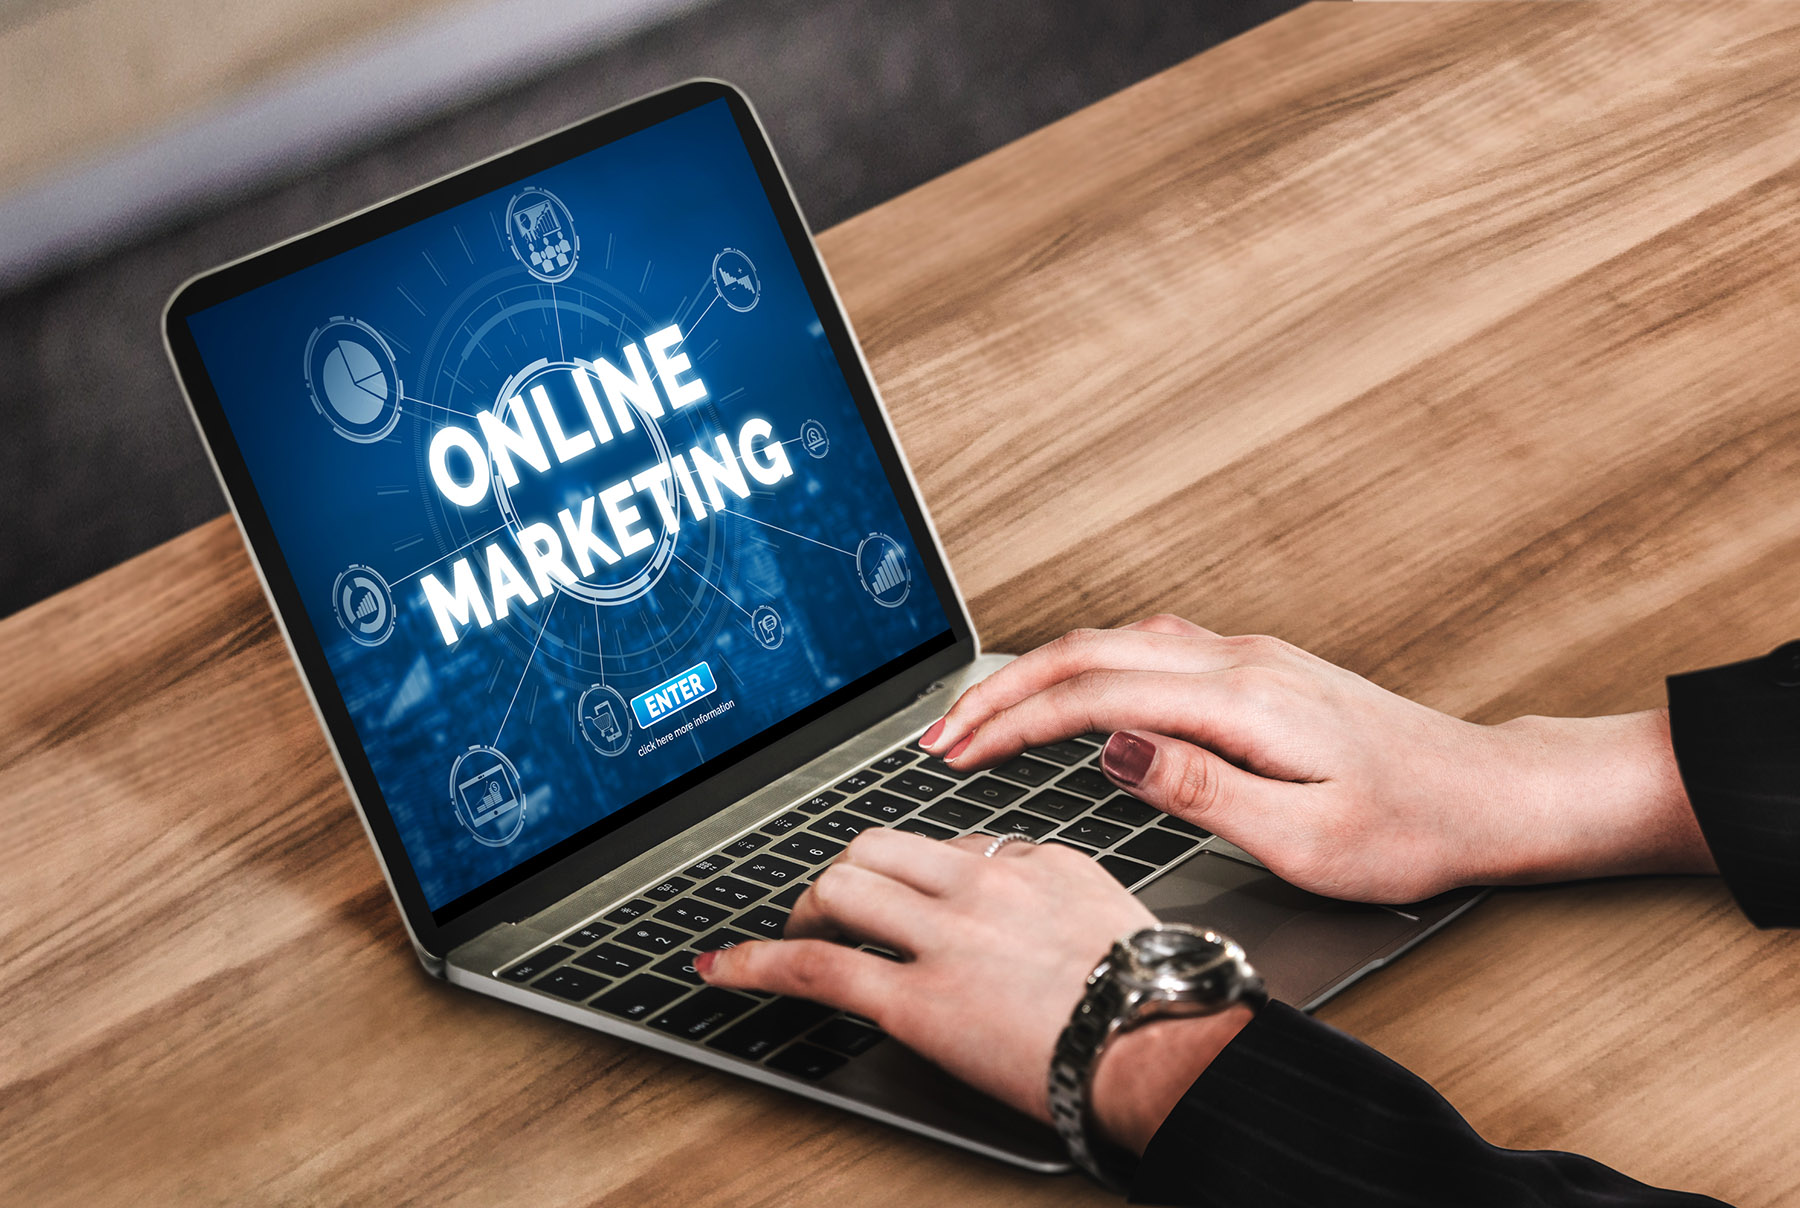 Crystal Clear SEO is a full service Online Marketing firm located in Springfield, MO.